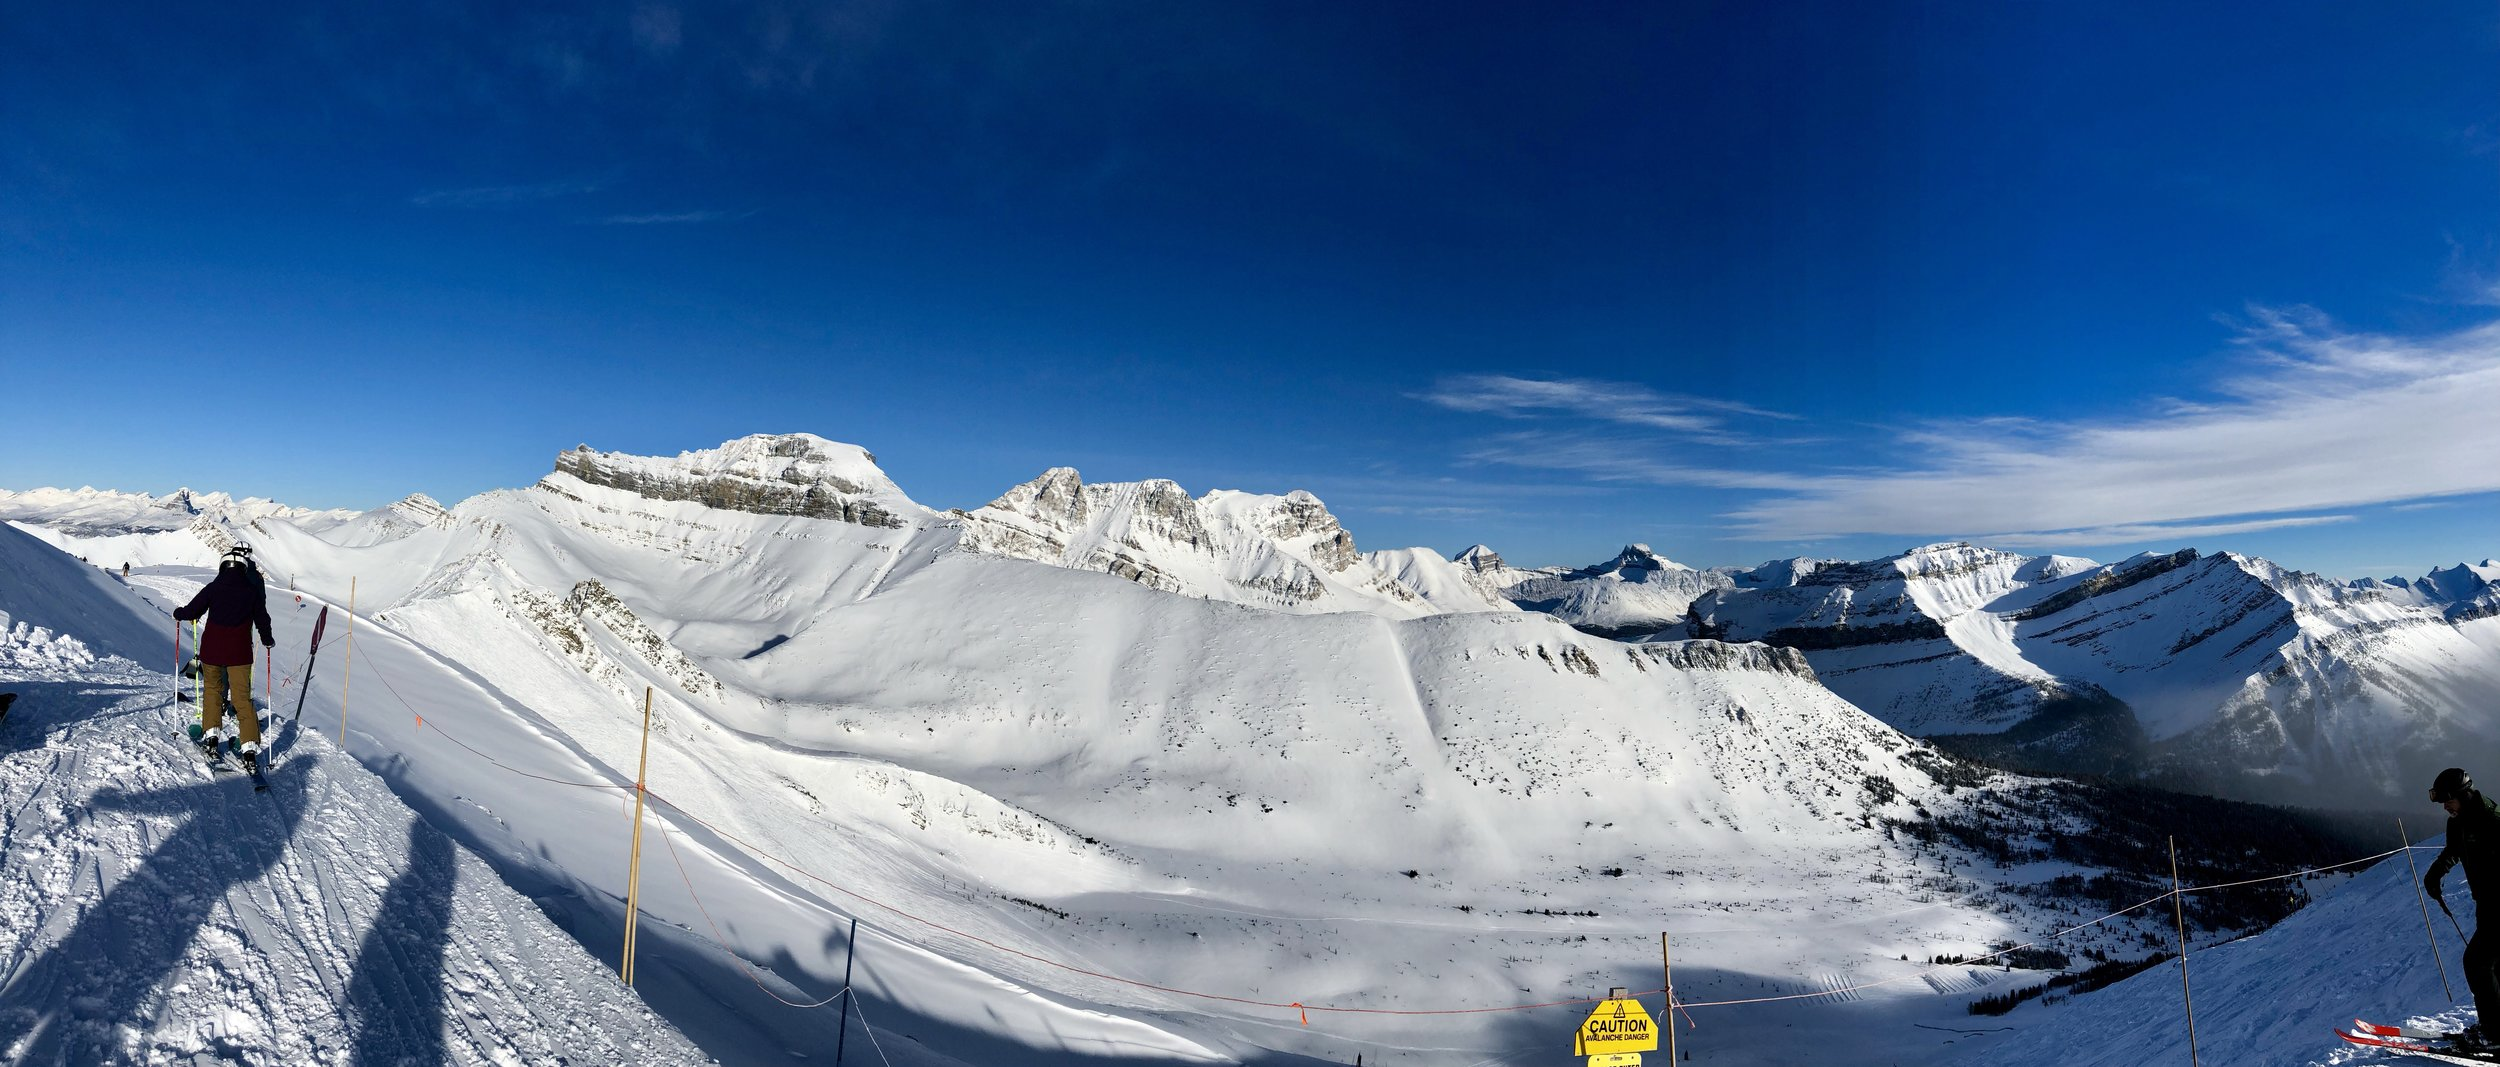 Lake Louise, top of the poma lift